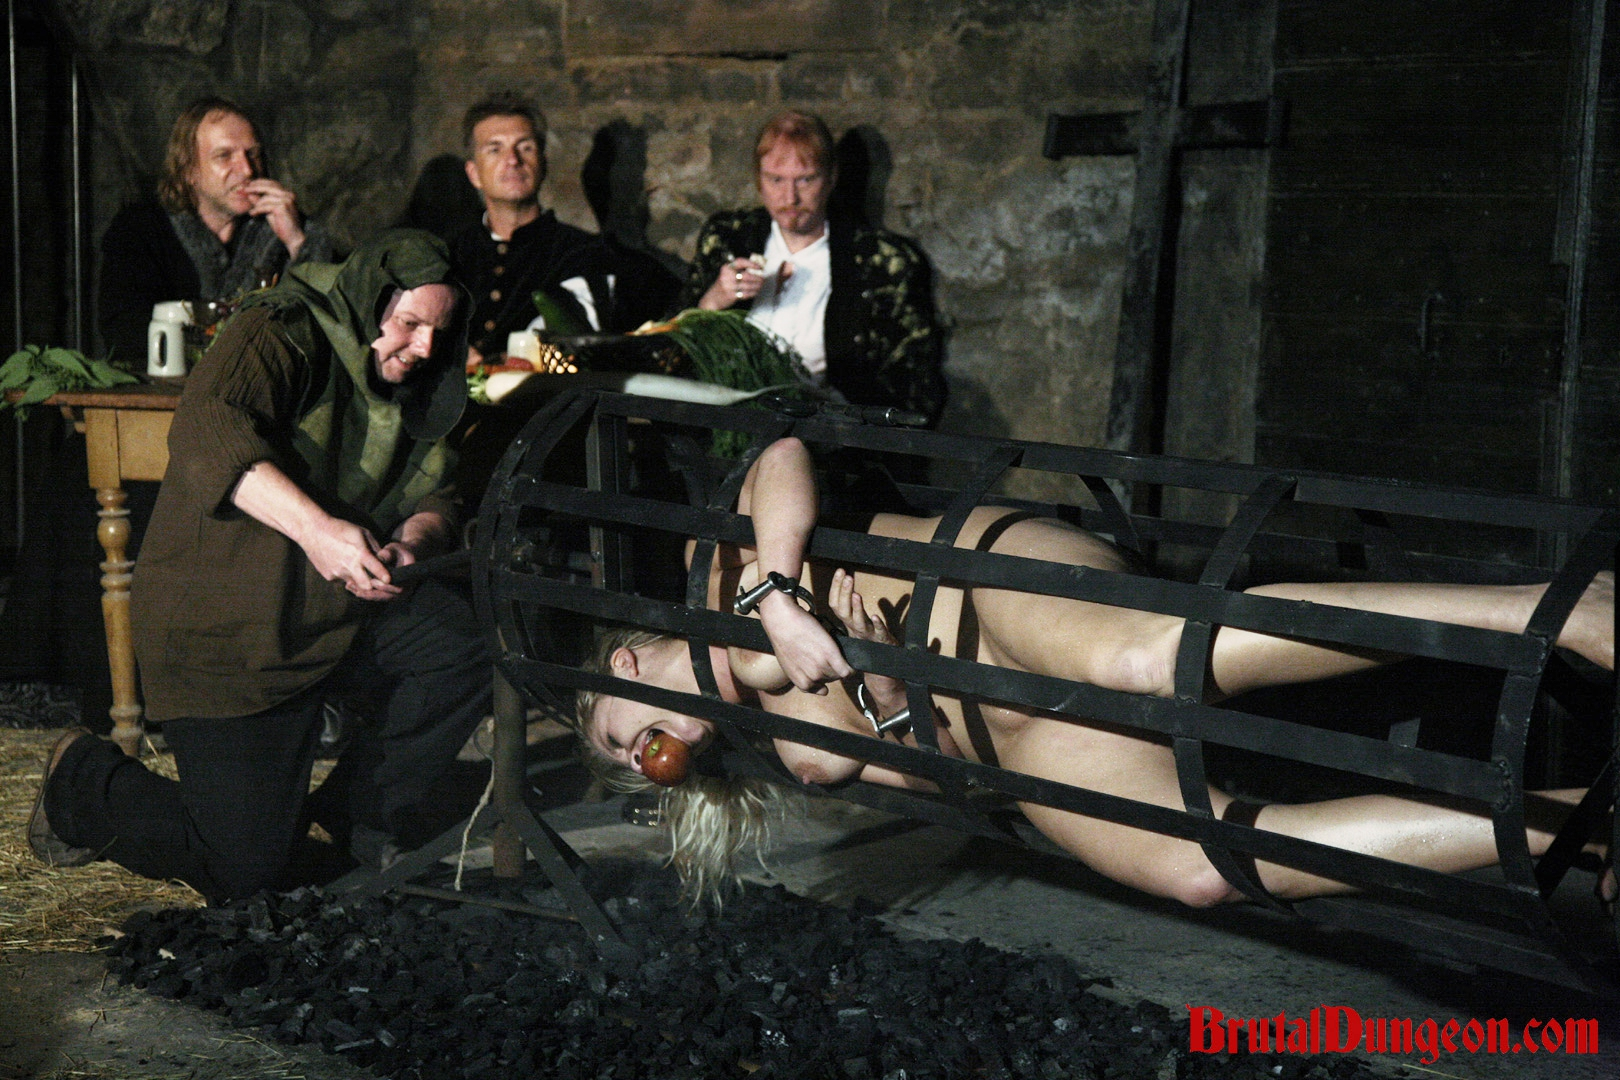 Blonde magda bondage gang bang  magda a hot blonde wench the dungeon keepers wanted to play with was wrongfully arrested and punished  she must endure imprisonment bdsm fun bondage gang bang spanking slapping fingering extreme food play triple penetration. Magda, a hot blonde wench the dungeon keepers wanted to play with, was wrongfully arrested and punished. She must endure imprisonment, BDSM fun, bondage, gang bang, spanking, slapping, fingering, extreme food play, triple penetration with tasty vegetables and a ride in a human spit roast.